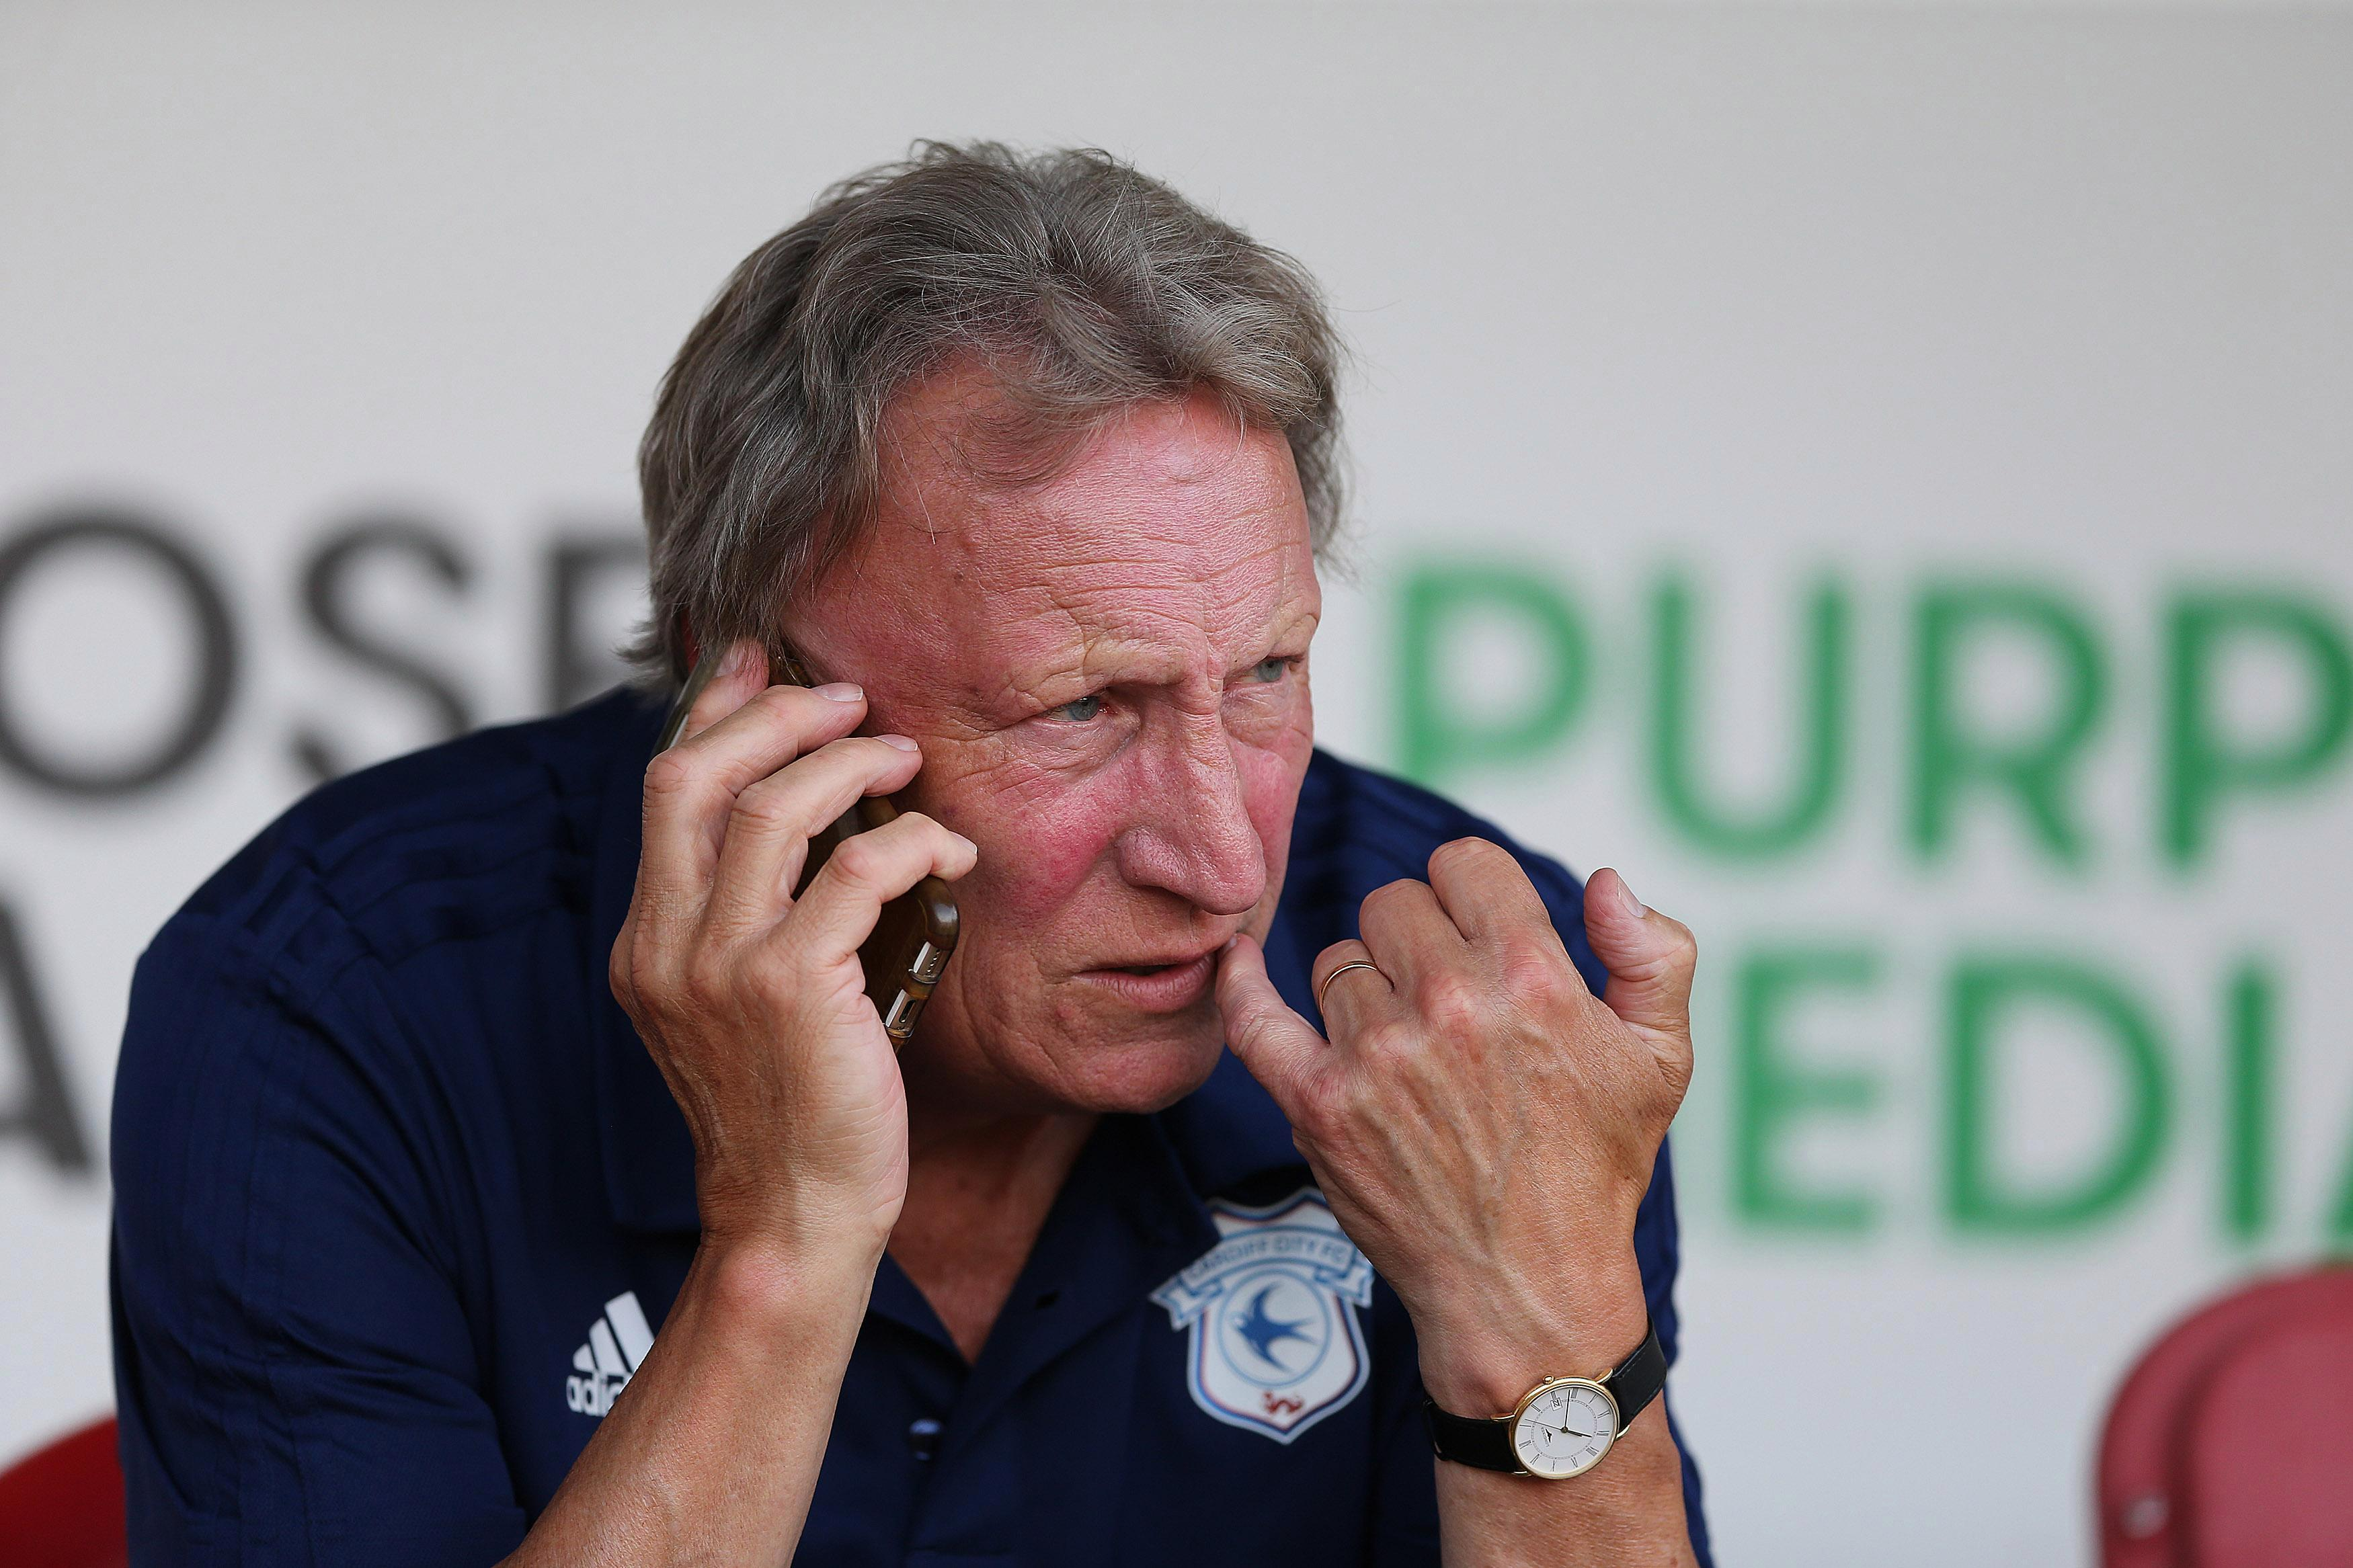 If Neil Warnock can make transfers, then so can you